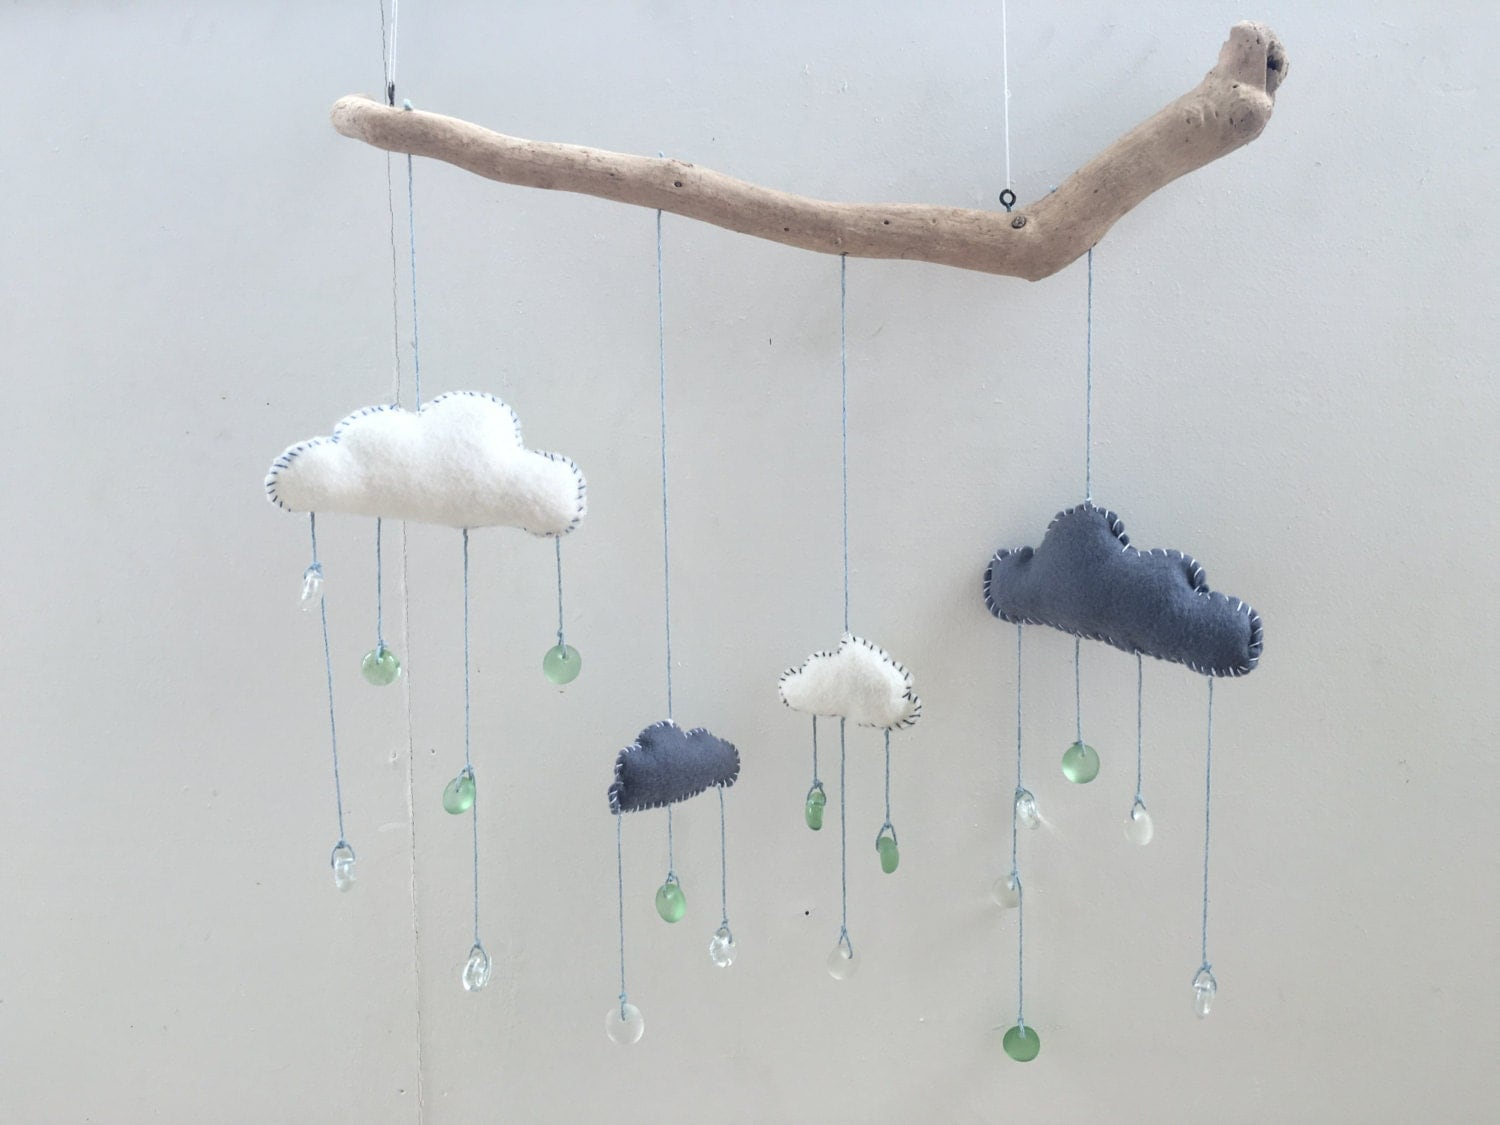 Driftwood Ecofelt Cloud Mobile Sunshower by TheMermaidShack # Sunshower Blue_021322